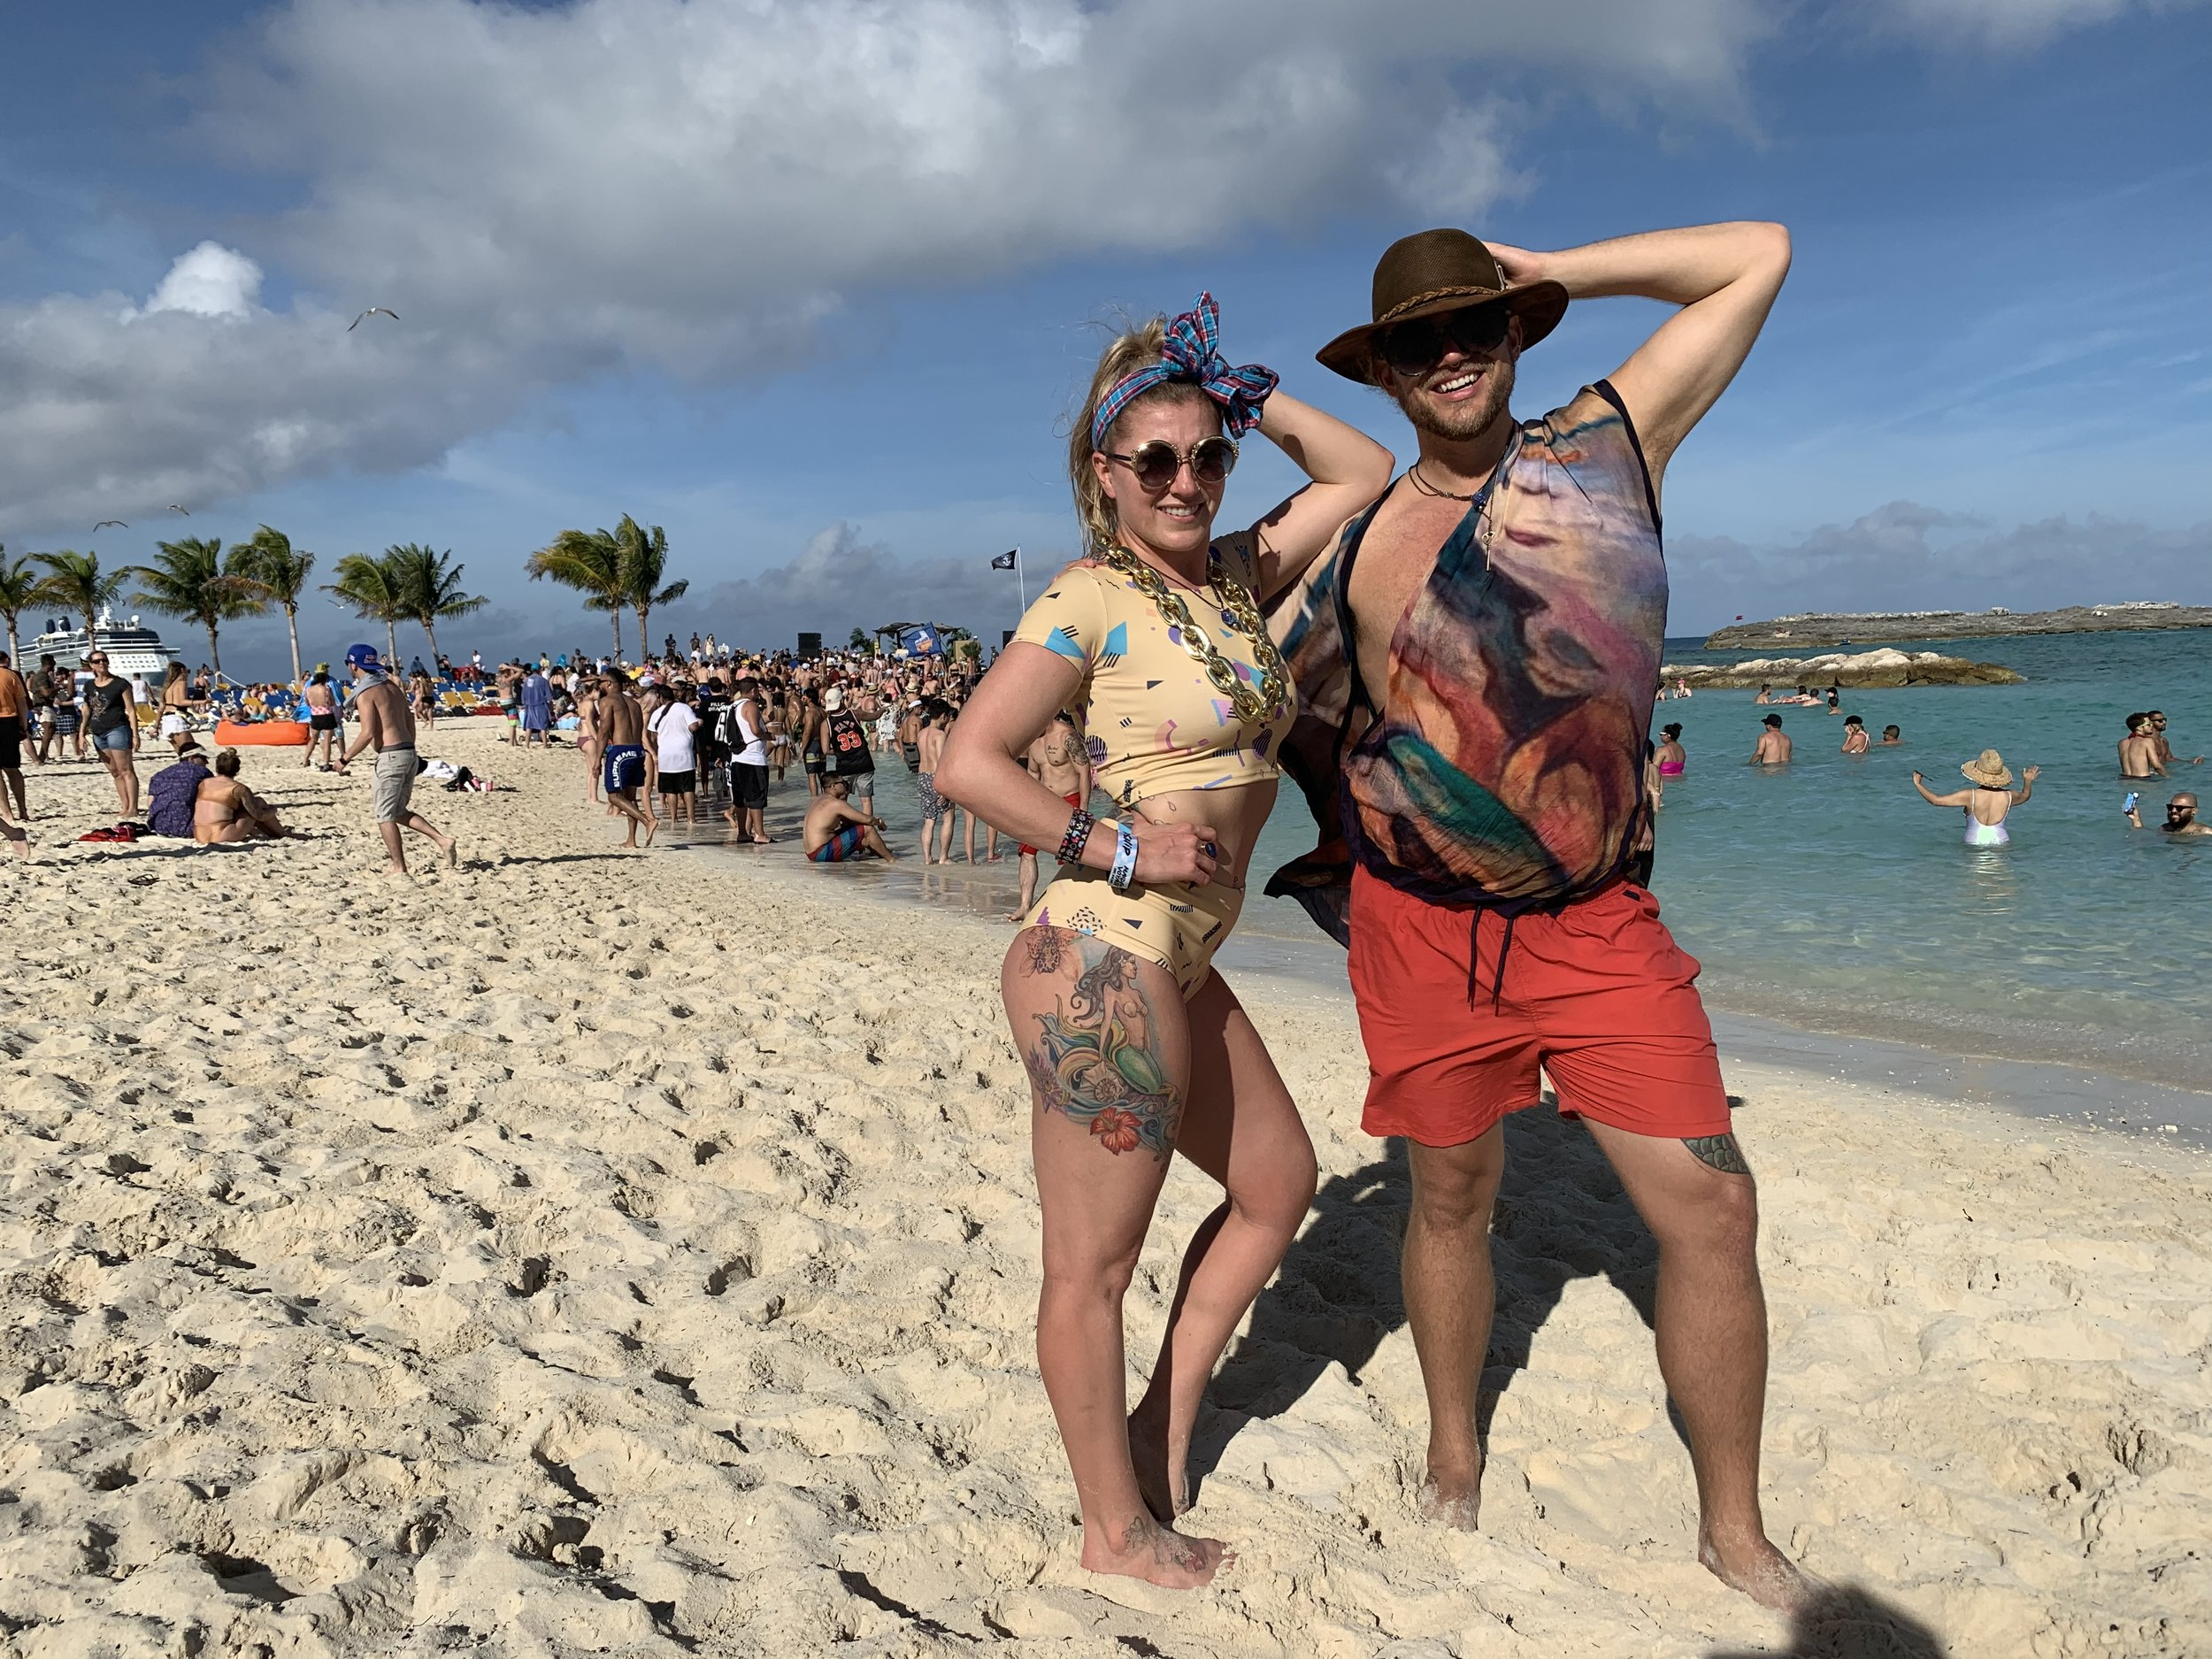 Jonah and Brittany in the Bahamas on the Friendship Festival Cruise!.